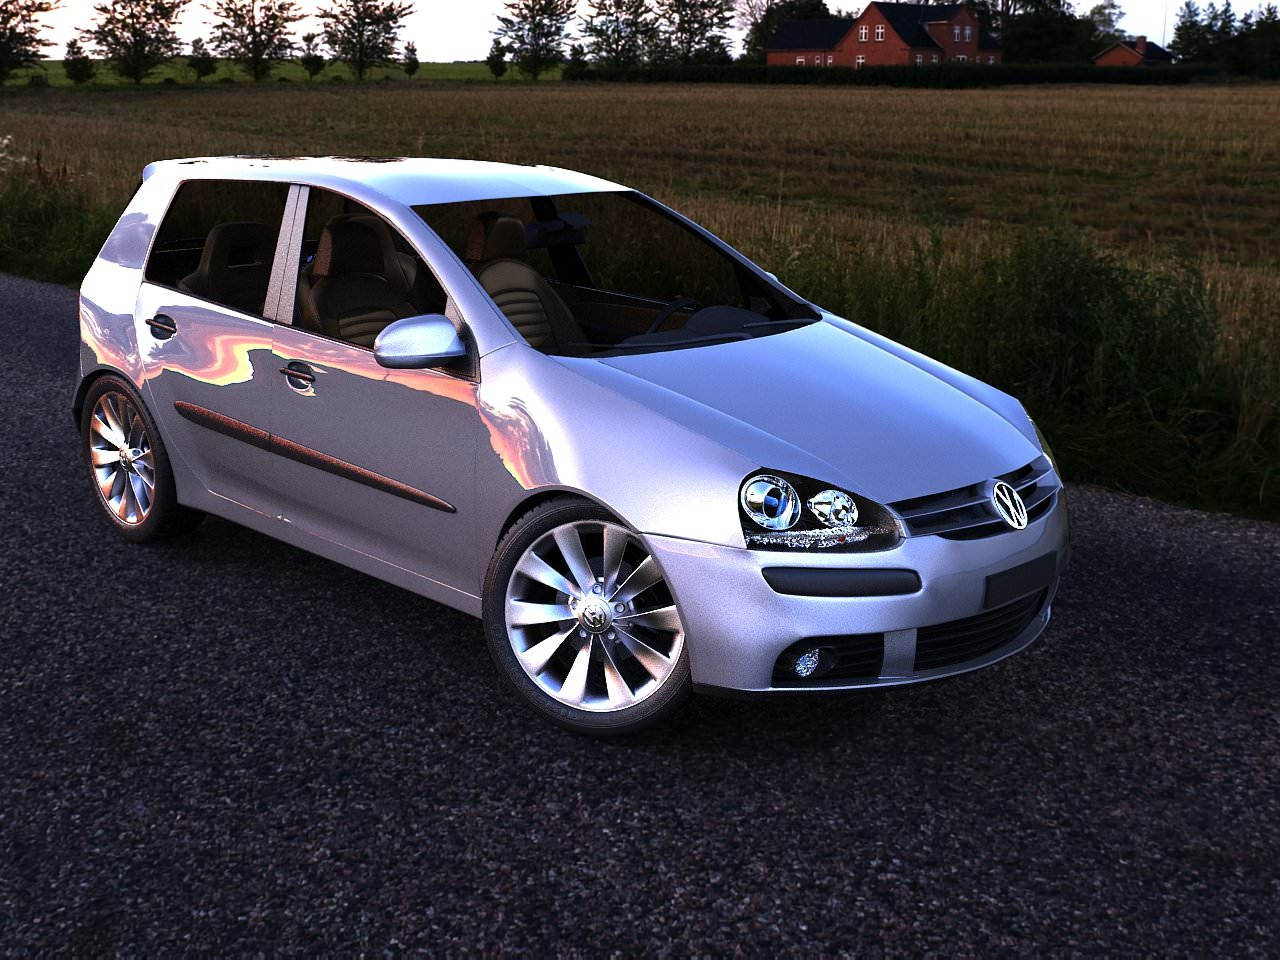 volkswagen golf 5 gt gti 3d model game ready max obj. Black Bedroom Furniture Sets. Home Design Ideas